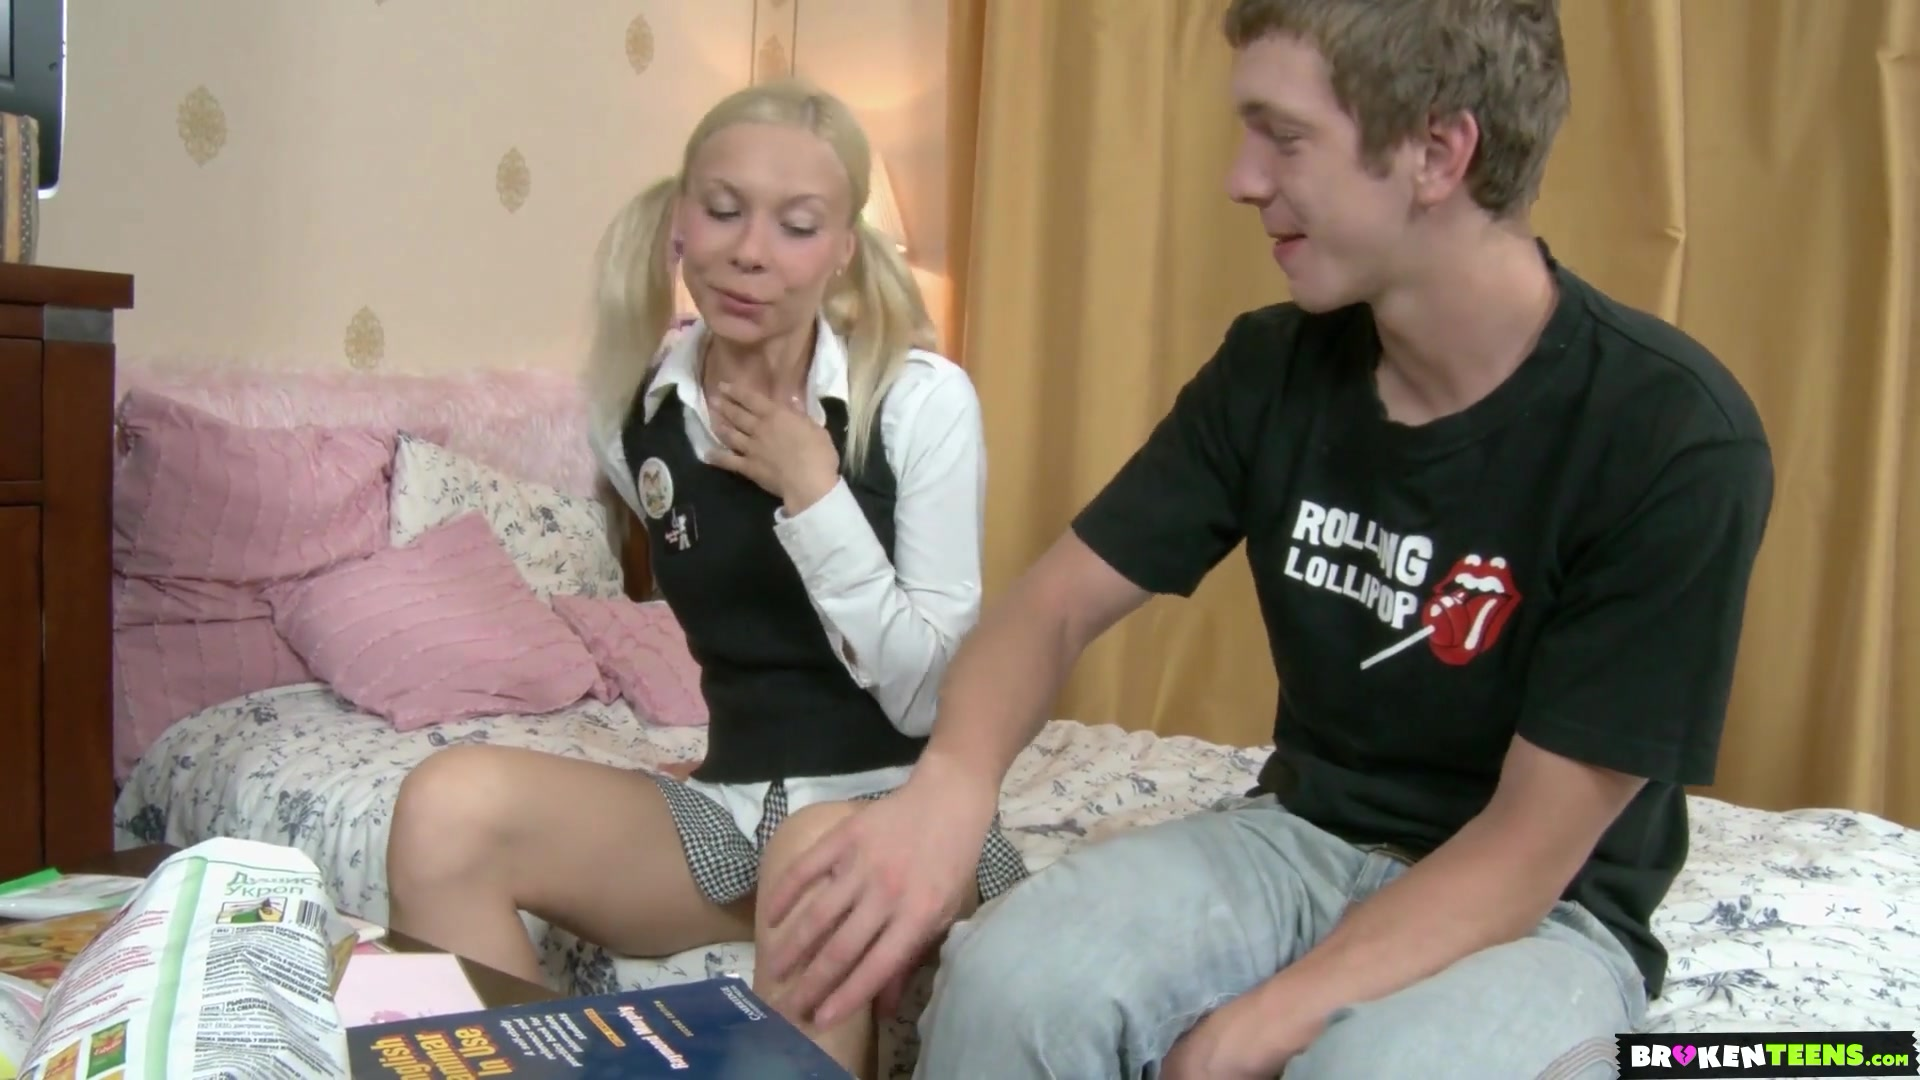 Dude discovers the benefits of tutoring as he fucks a hot Russian girl